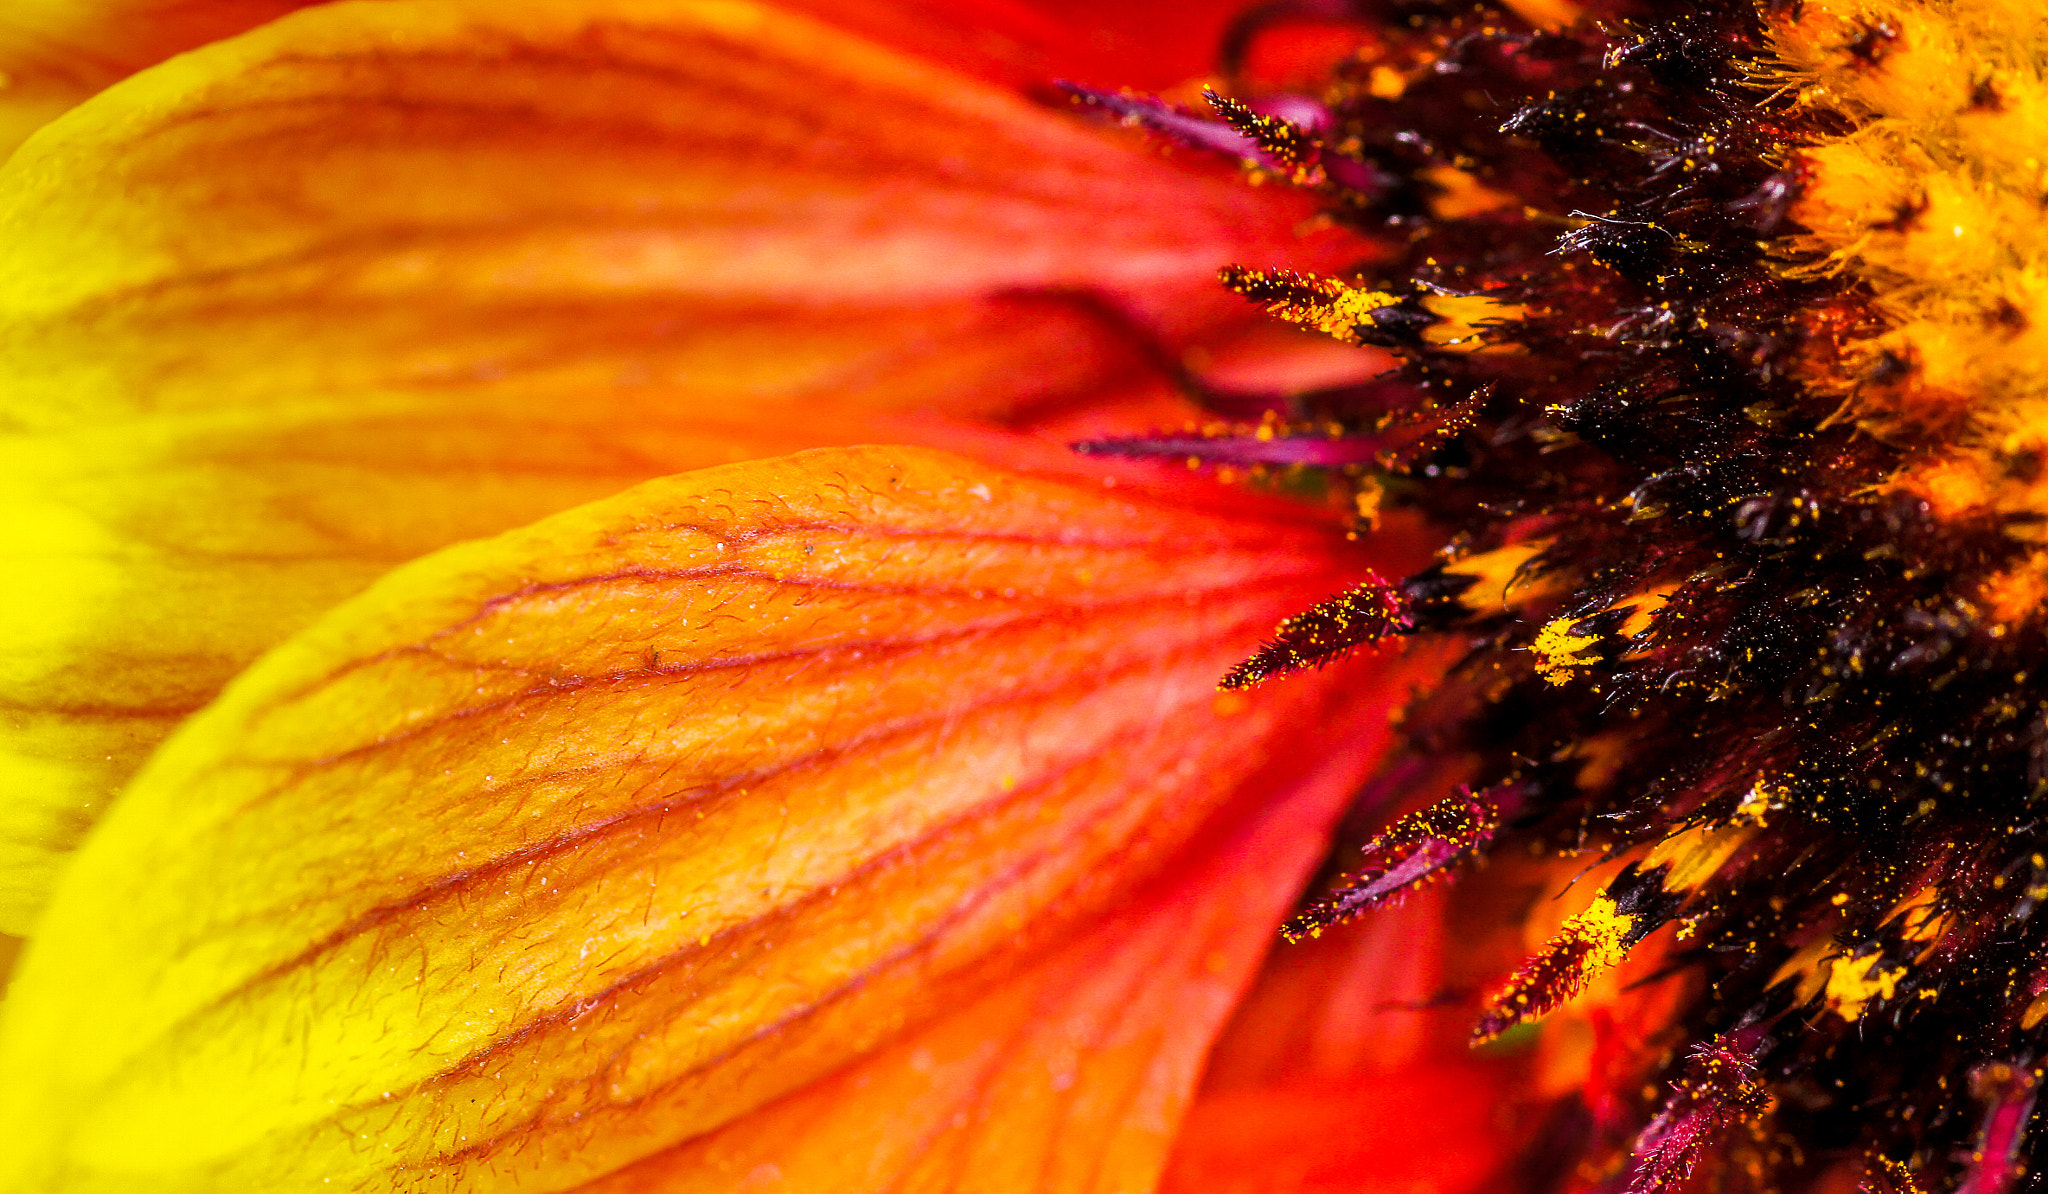 Photograph Fireflower by Lluís Grau on 500px